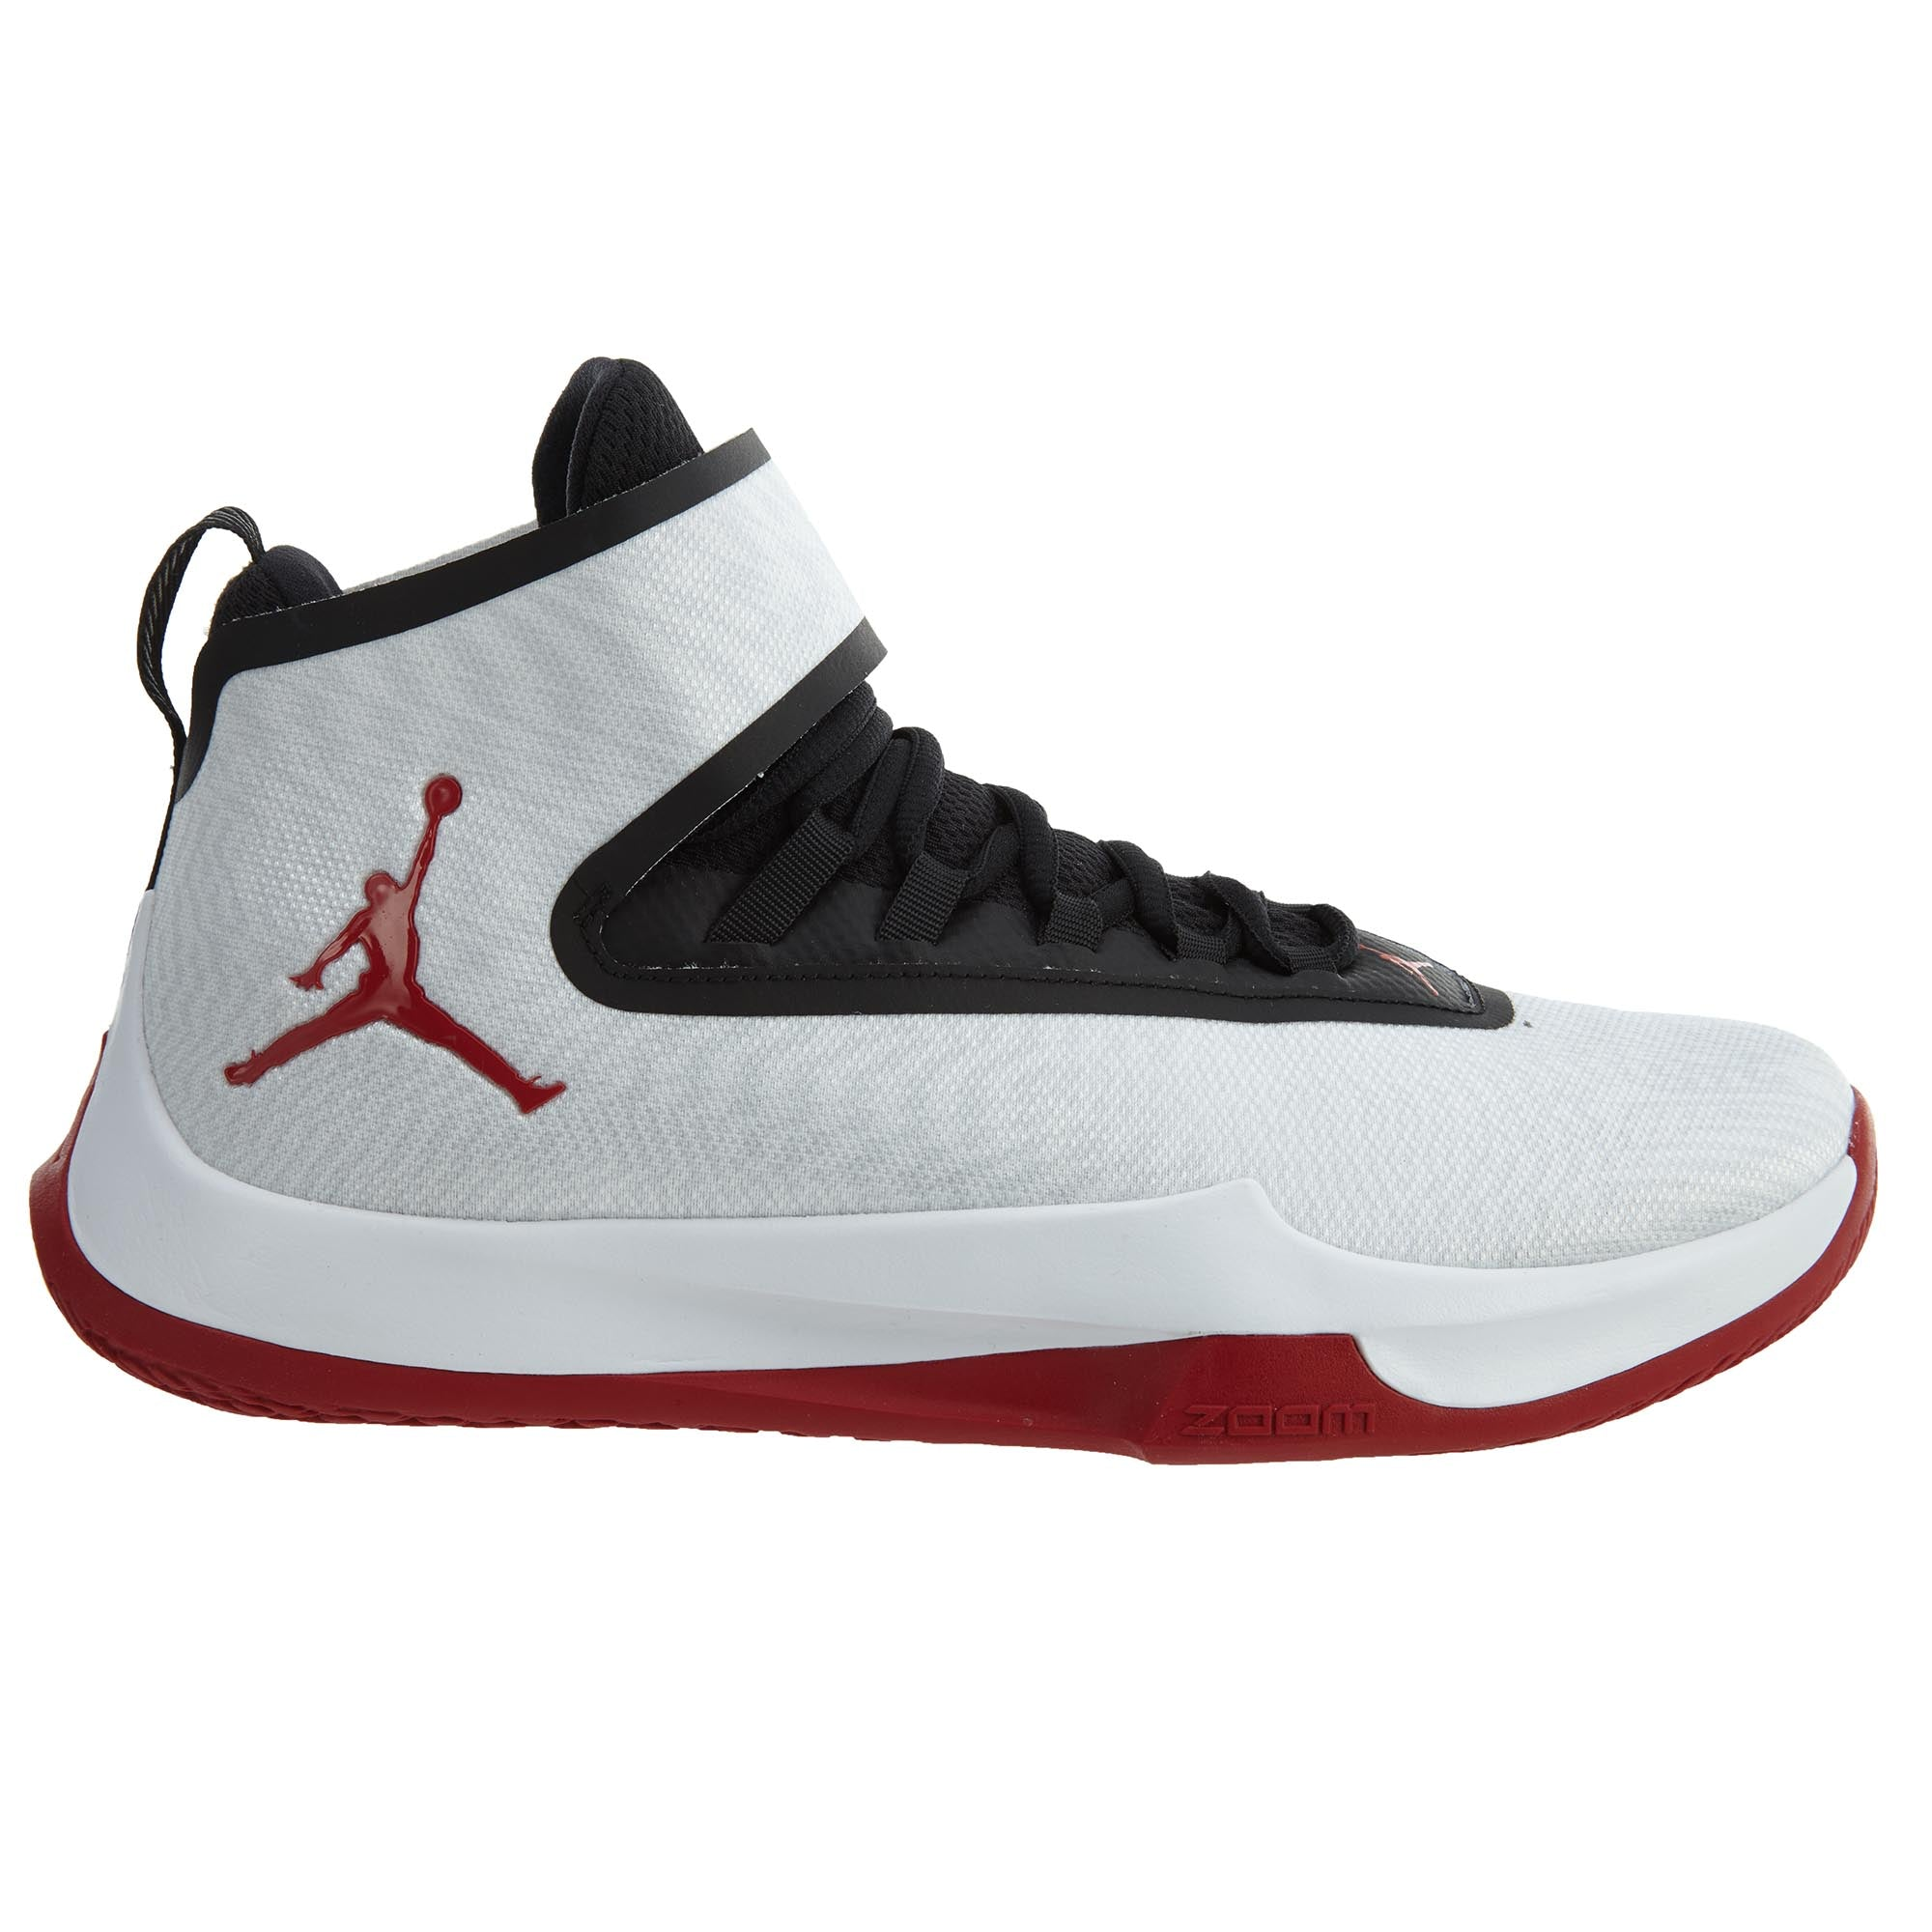 7bf5a9655b2a87 Jordan Fly Unlimited Mens Style   Aa1282